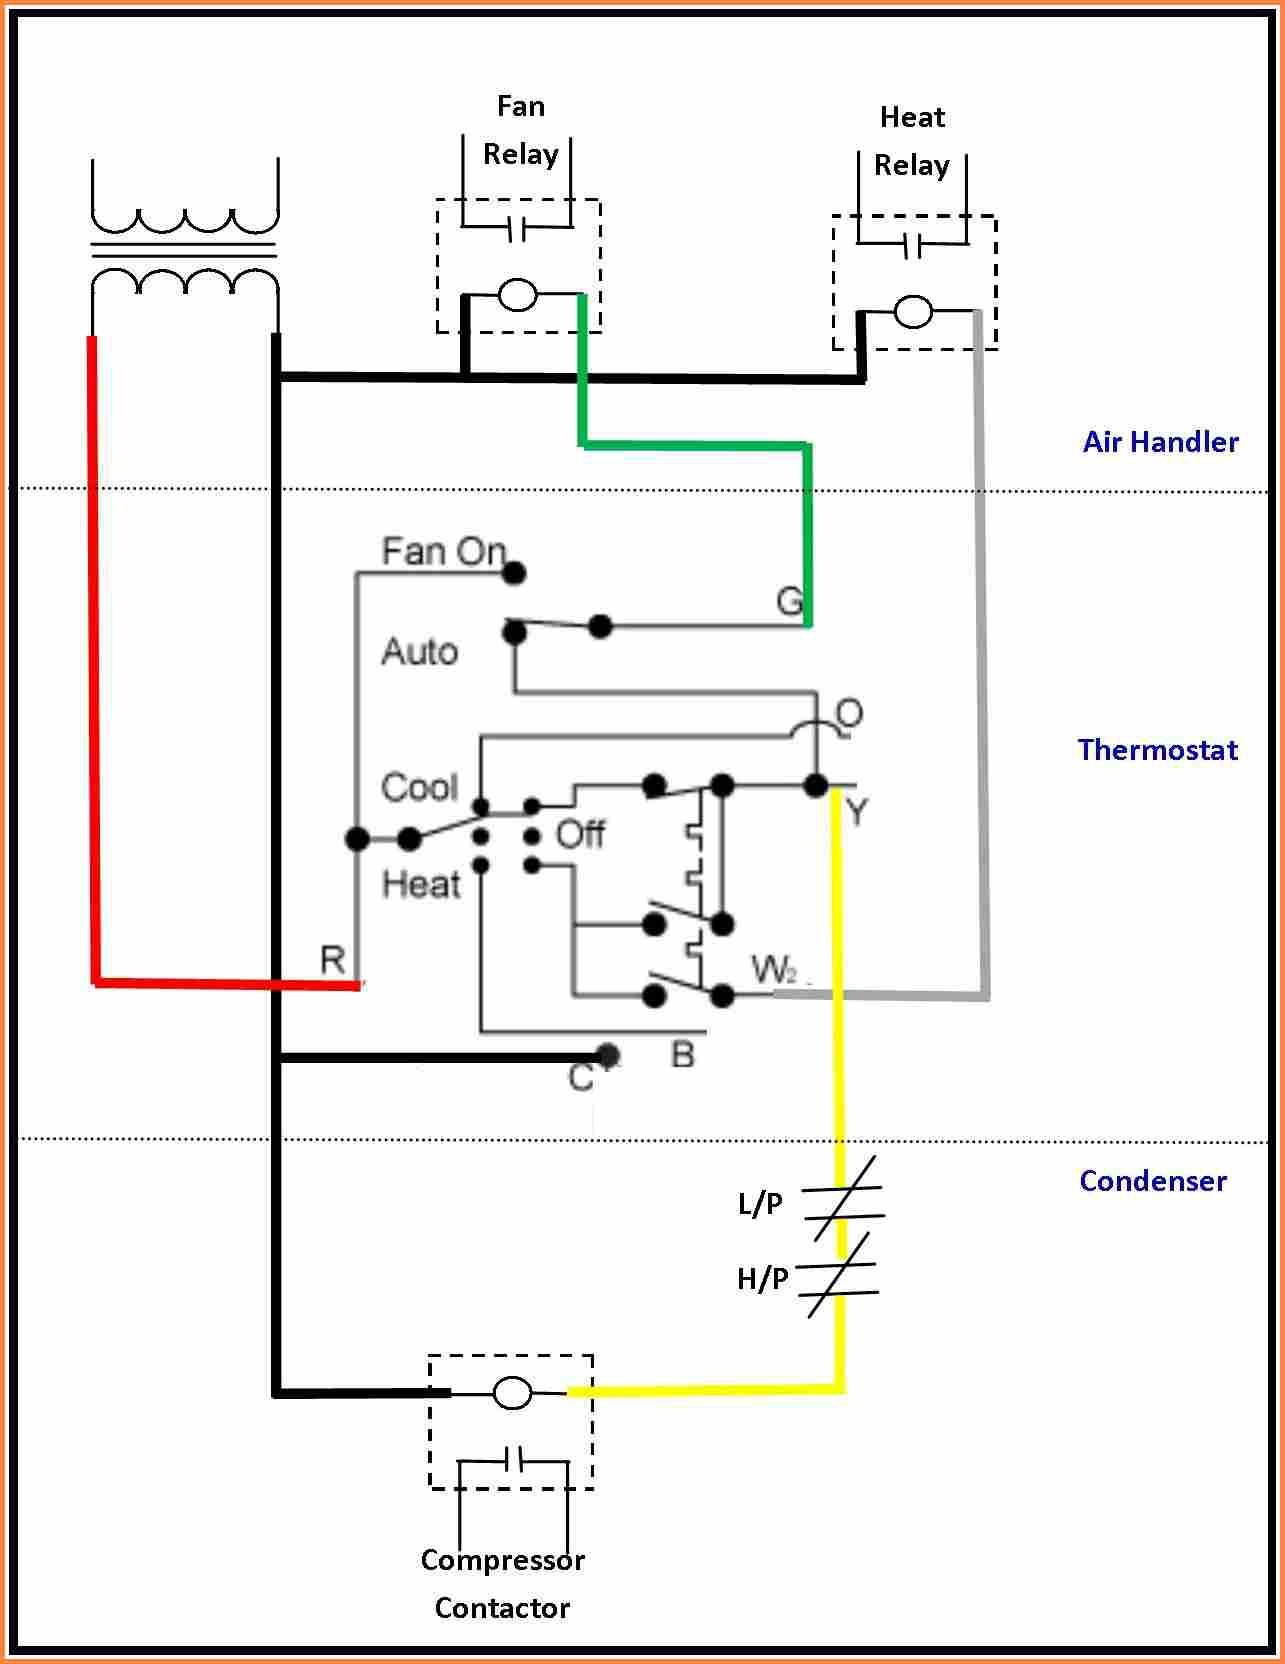 Air Conditioning thermostat Wiring Diagram Luxury Air Conditioner thermostat Wiring Diagram Striking Goodman Ac Of Air Conditioning thermostat Wiring Diagram